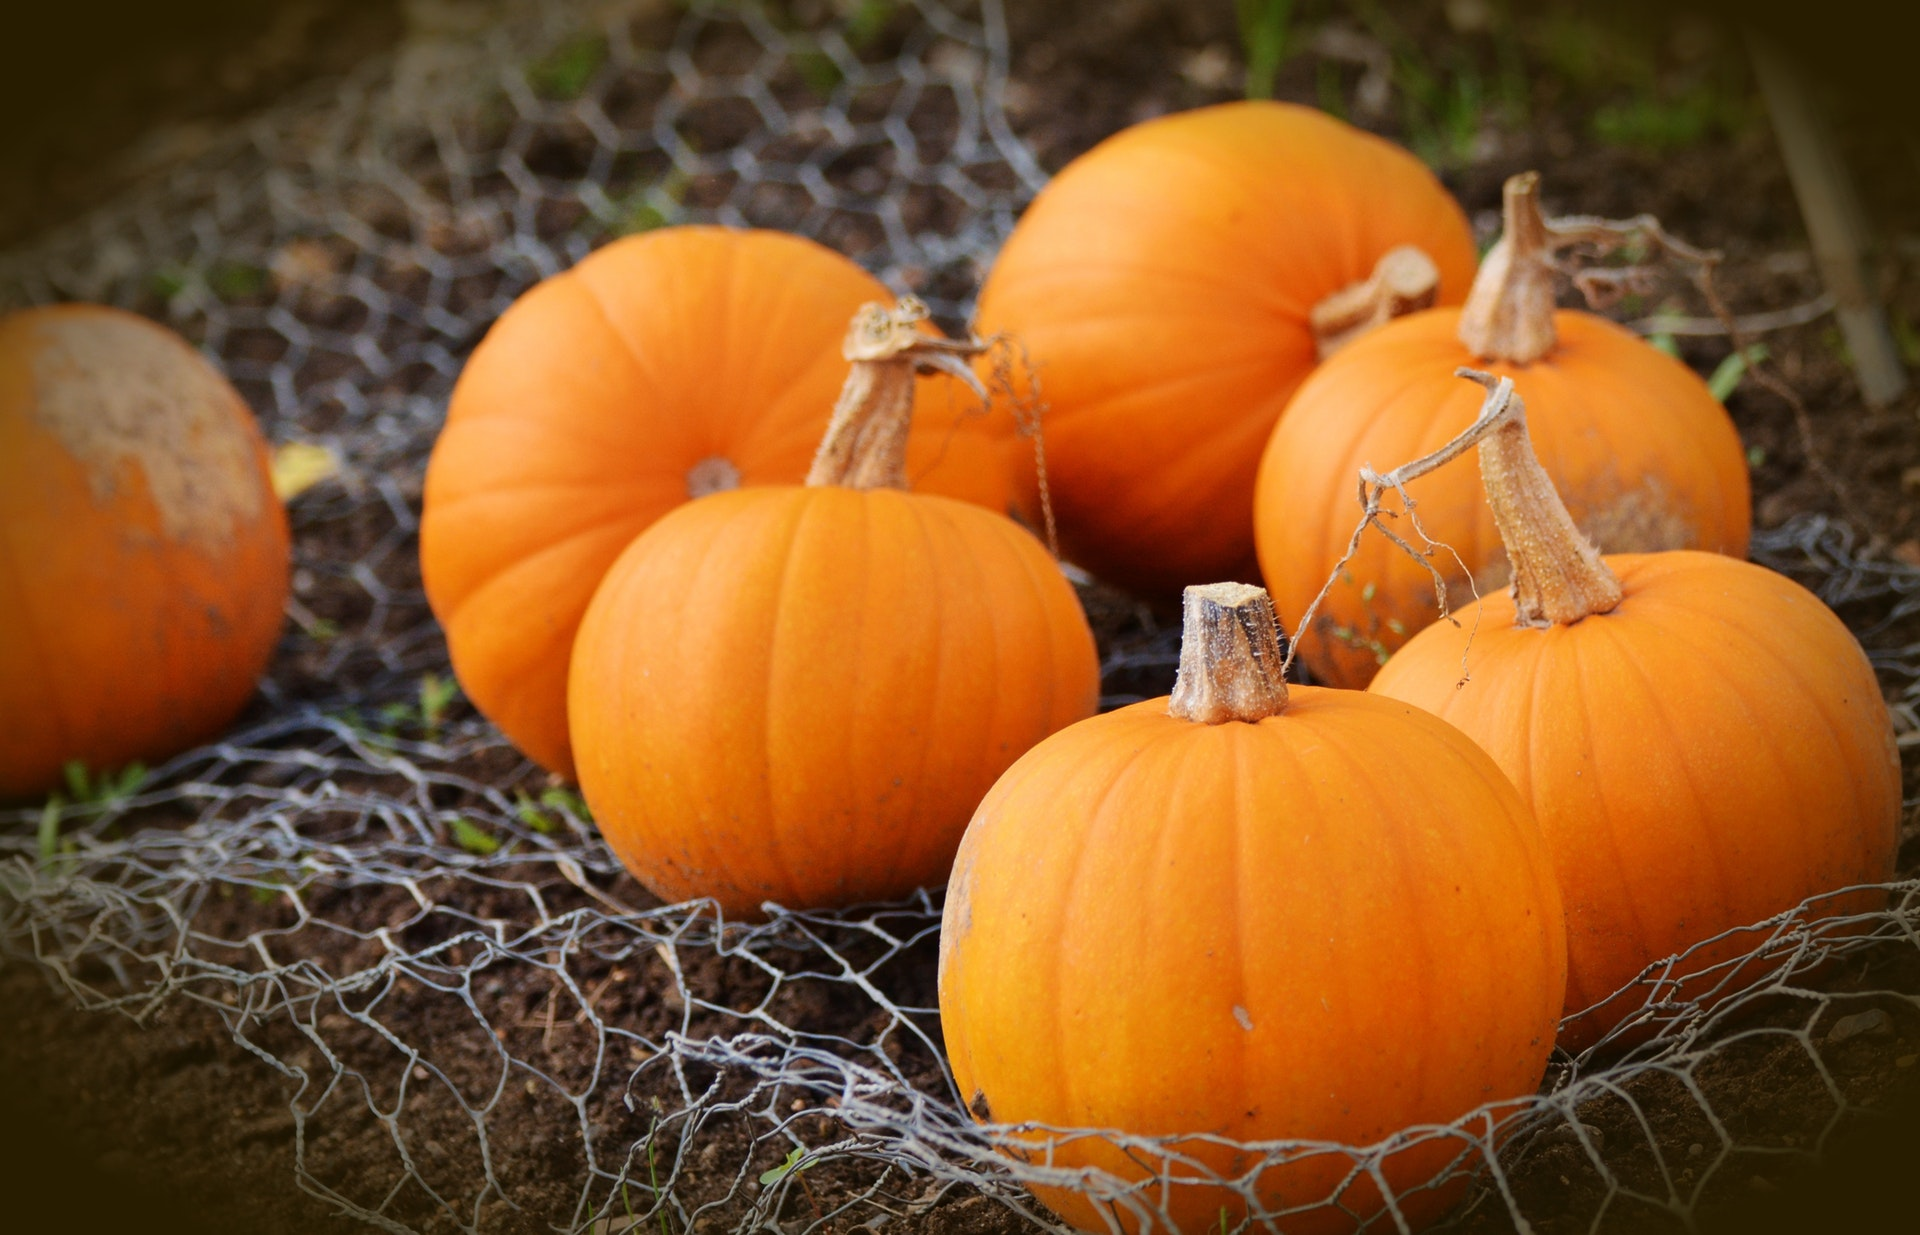 The Best Advice on How to Preserve a Pumpkin for Year-Round Flavor